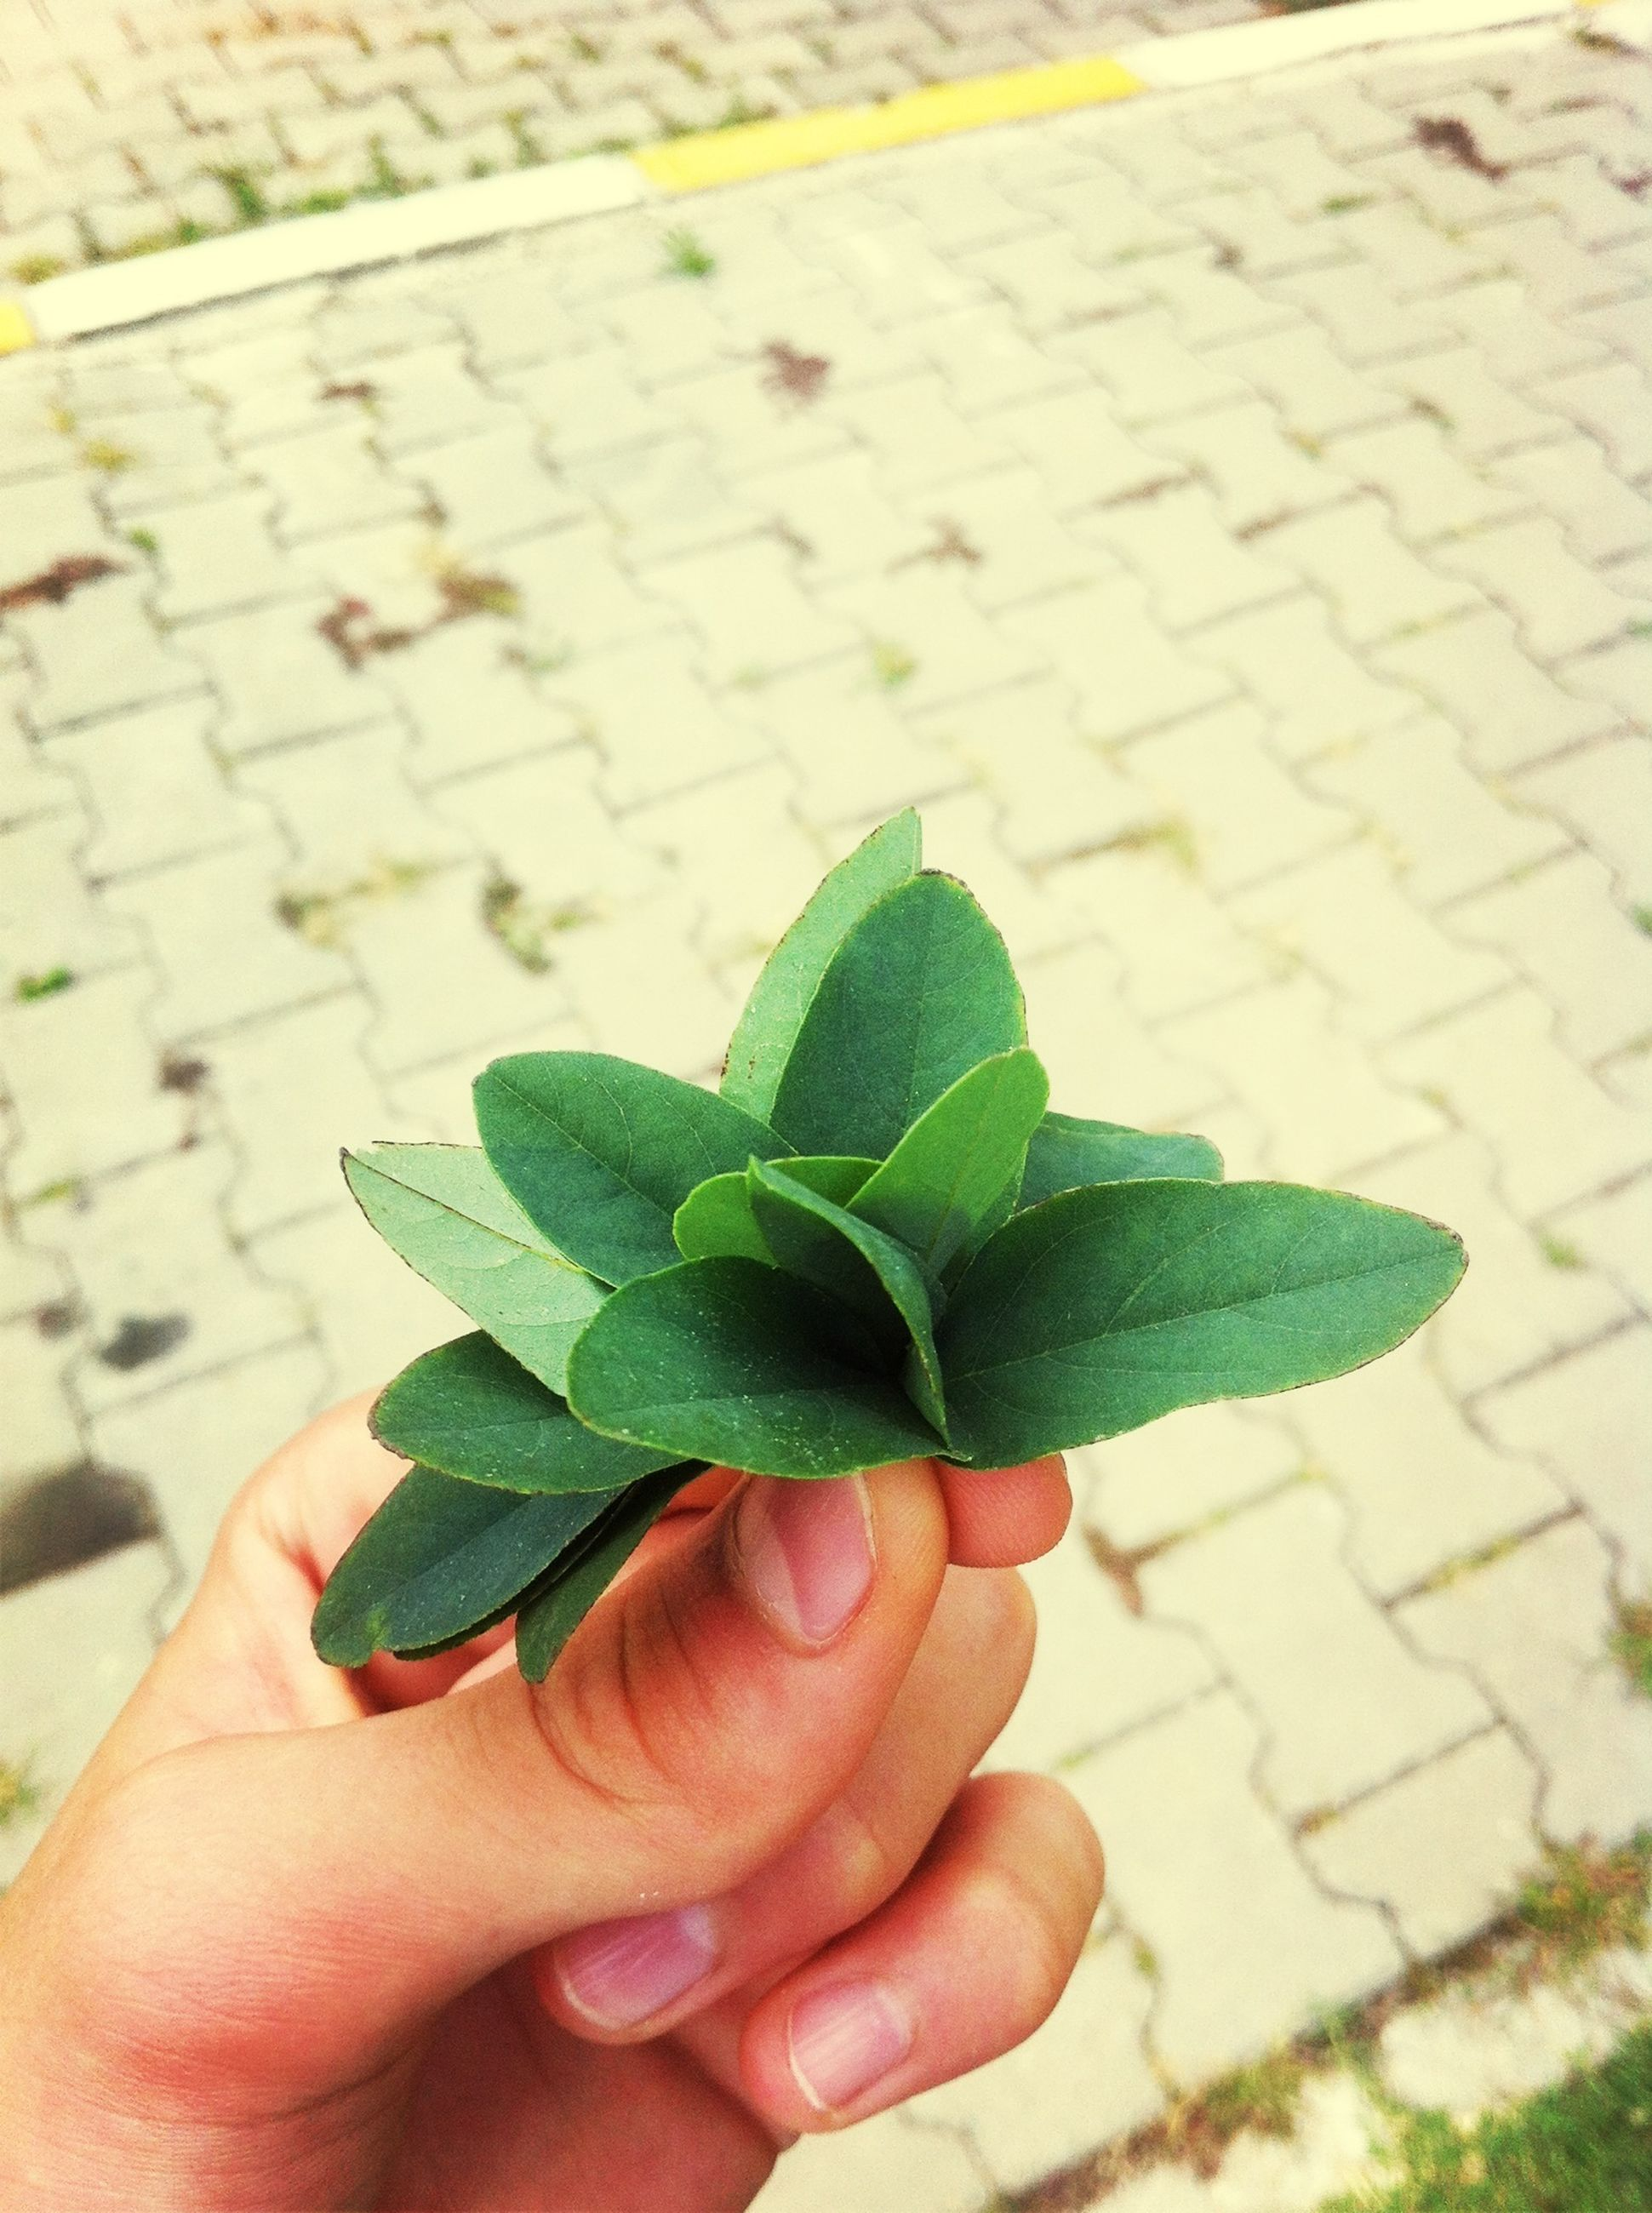 leaf, person, personal perspective, part of, green color, unrecognizable person, holding, street, leaf vein, close-up, cropped, focus on foreground, plant, day, outdoors, human finger, lifestyles